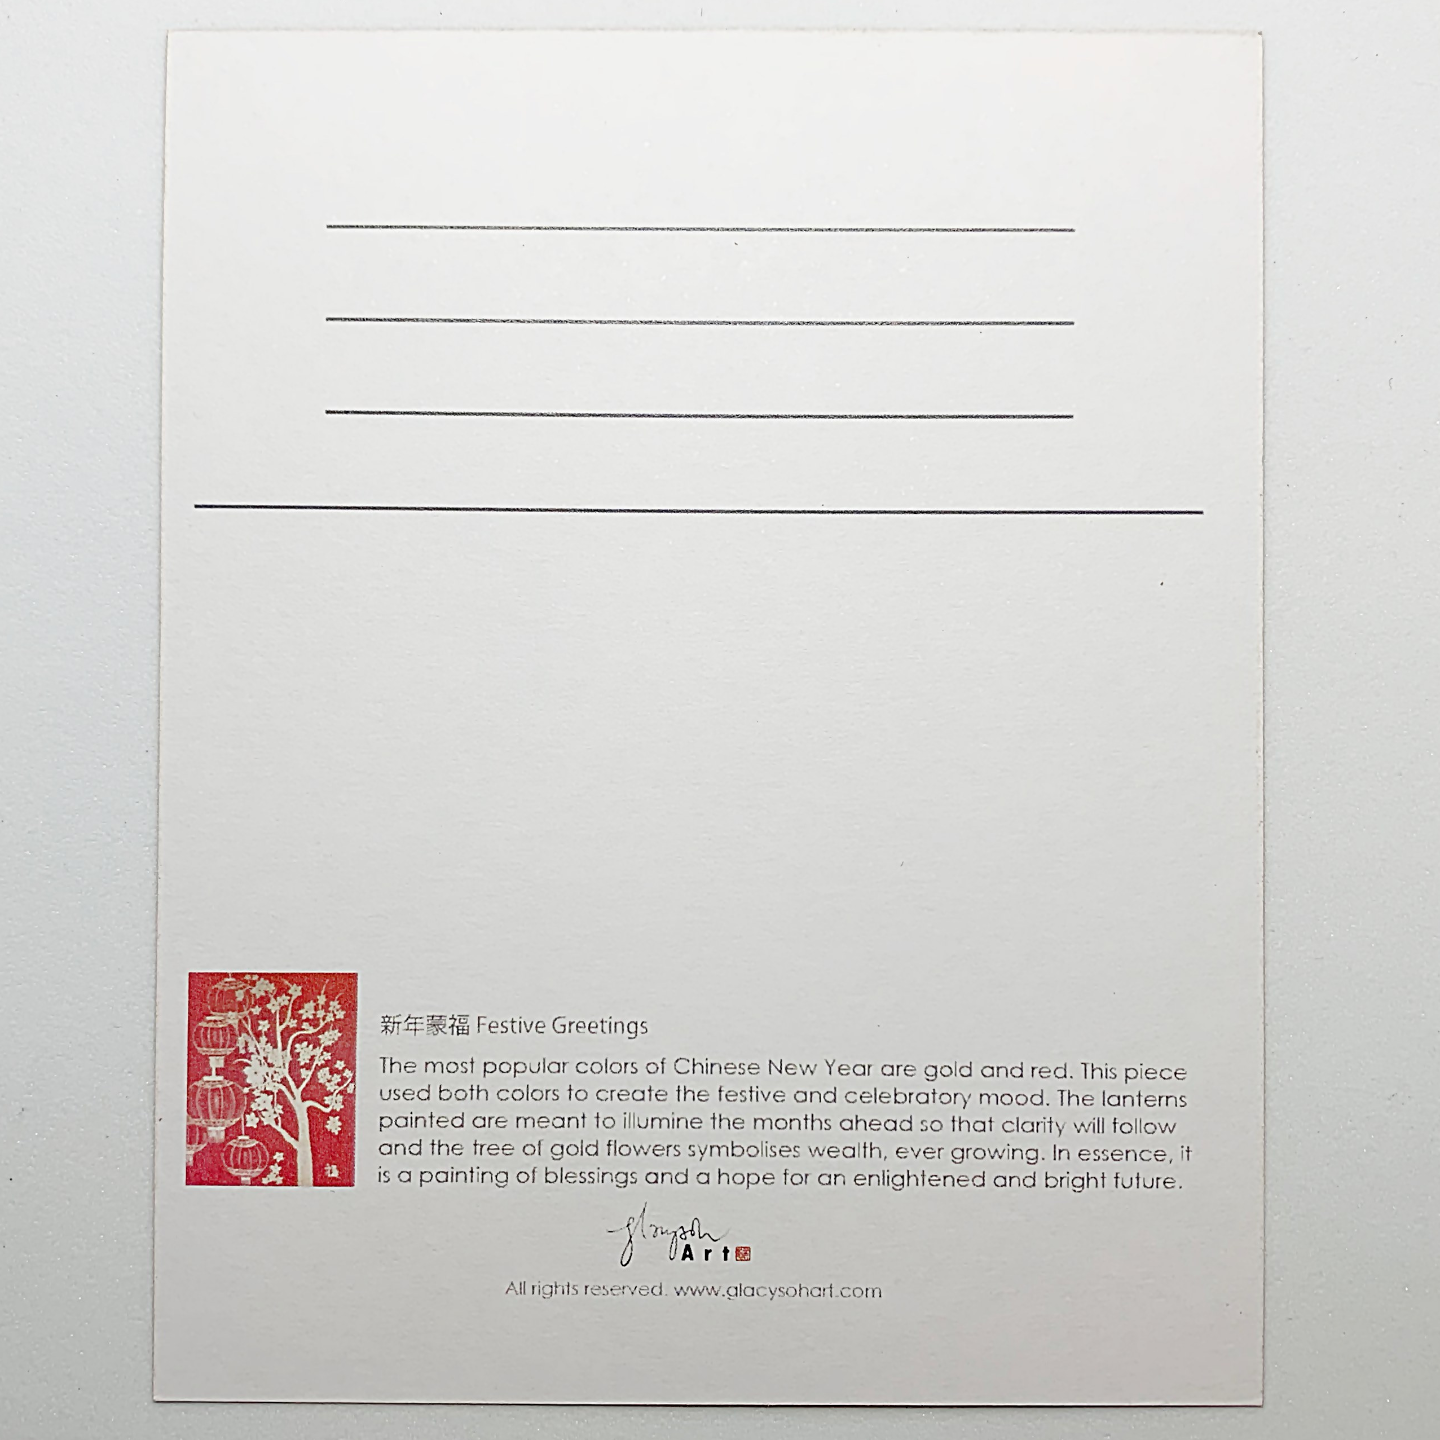 Sketches Of Singapore Series Chinese New Year Postcard - Festive Greetings by Glacy Soh